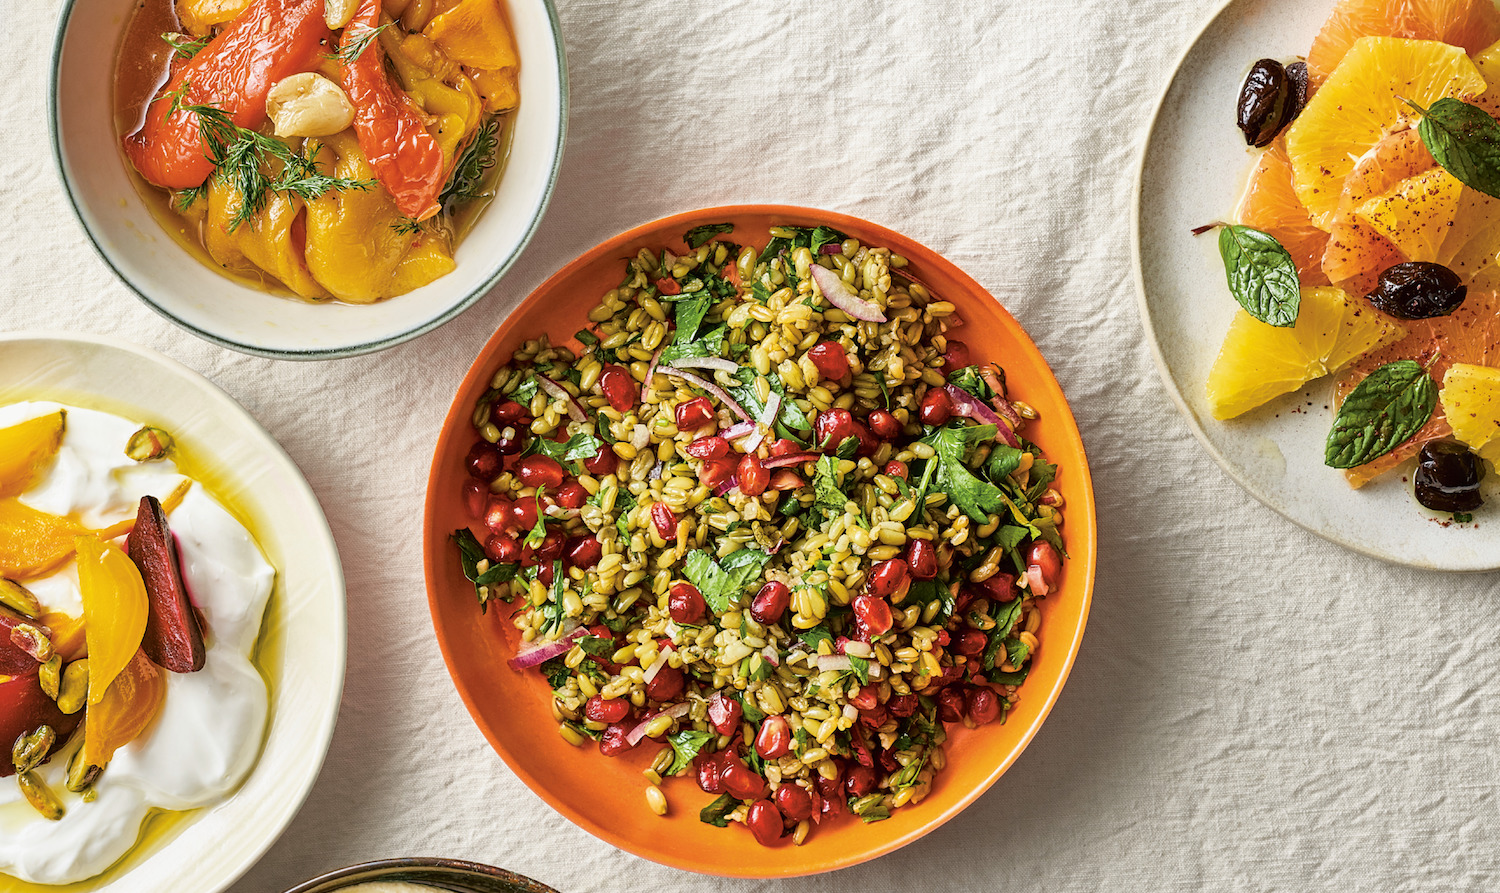 The New Israeli Cookbook That Will Make You Excited for Fall